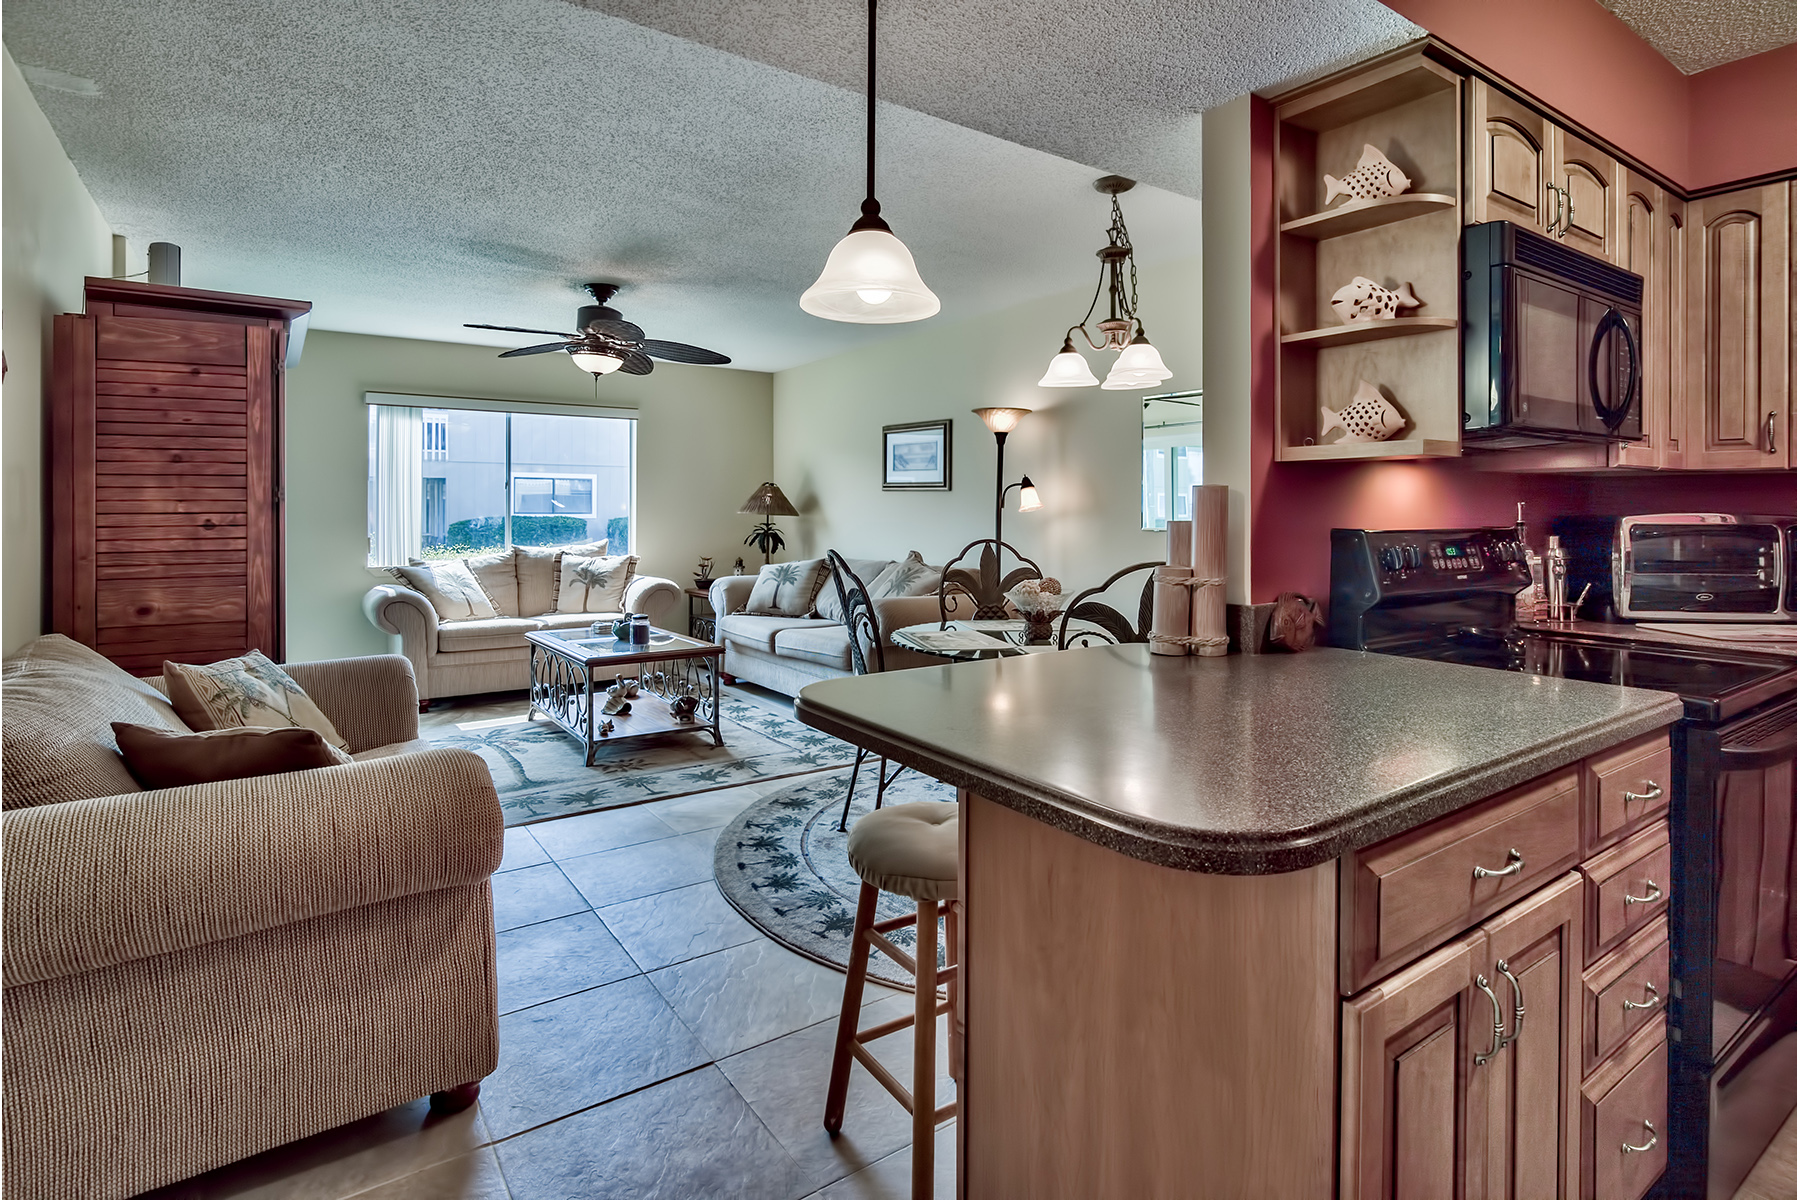 Condominium for Sale at Updated Condo Steps Away From Pool and Beach 3795 E Highway 98 15A, Destin, Florida, 32541 United States